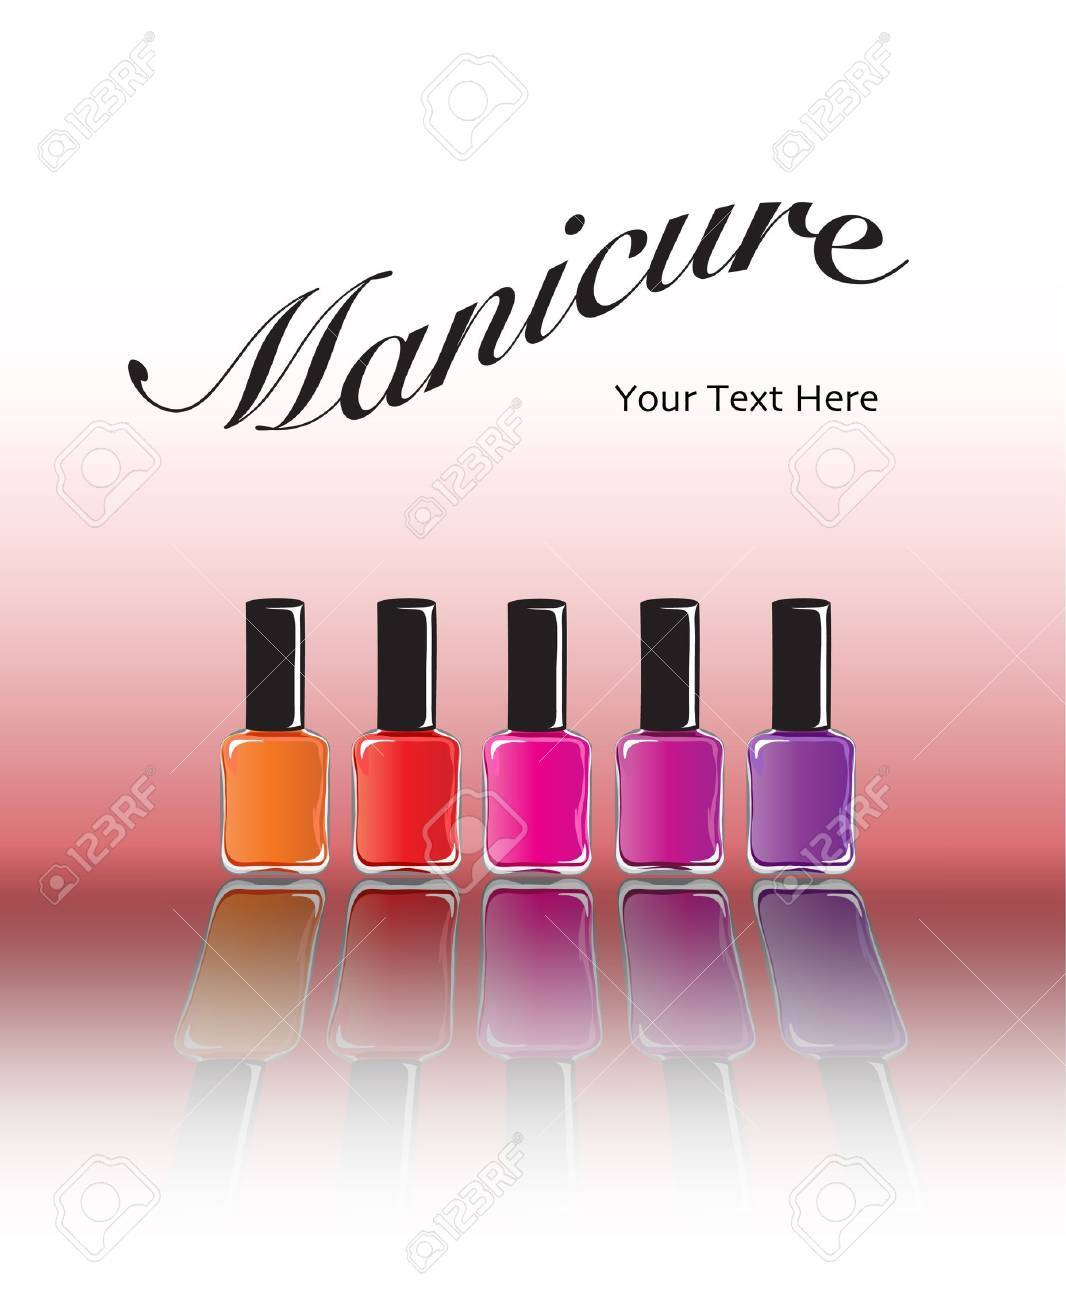 Bottles of nail polish in various shades with reflection. Manicure concept with space for text. EPS10 vector format. Stock Vector - 10631646